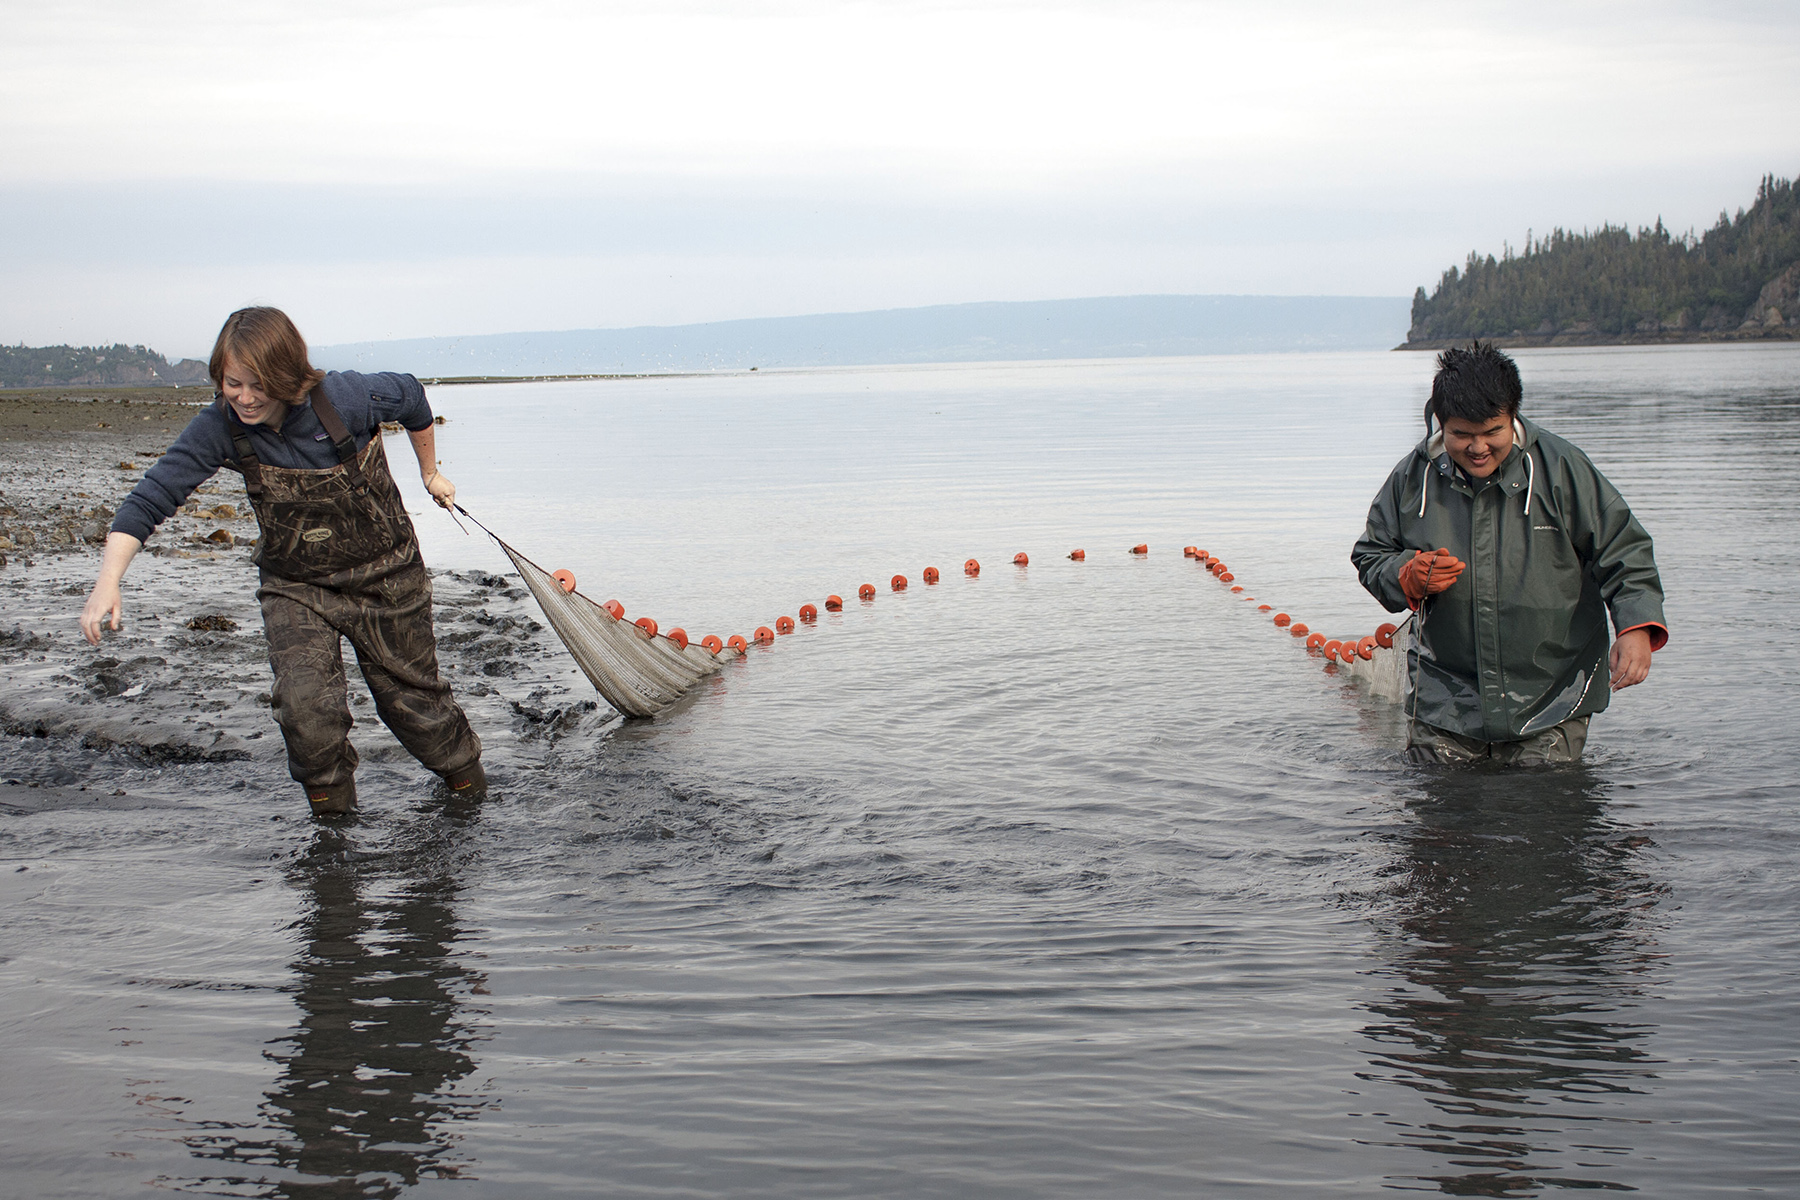 Two people in a river with net